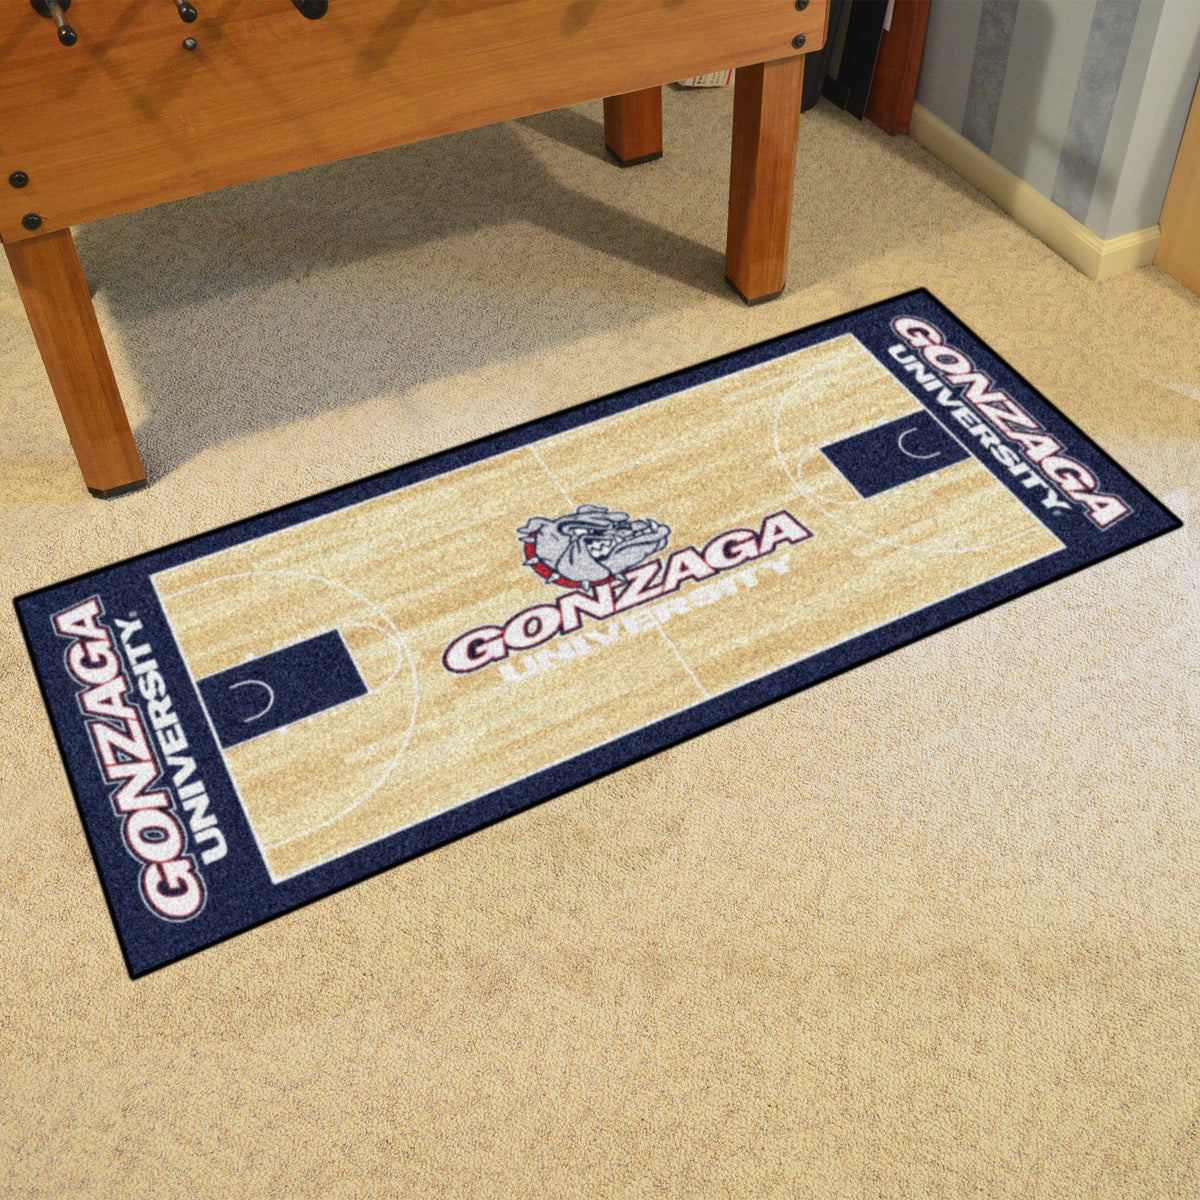 Collegiate - NCAA Basketball Runner Collegiate Mats, Rectangular Mats, NCAA Basketball Runner, Collegiate, Home Fan Mats Gonzaga